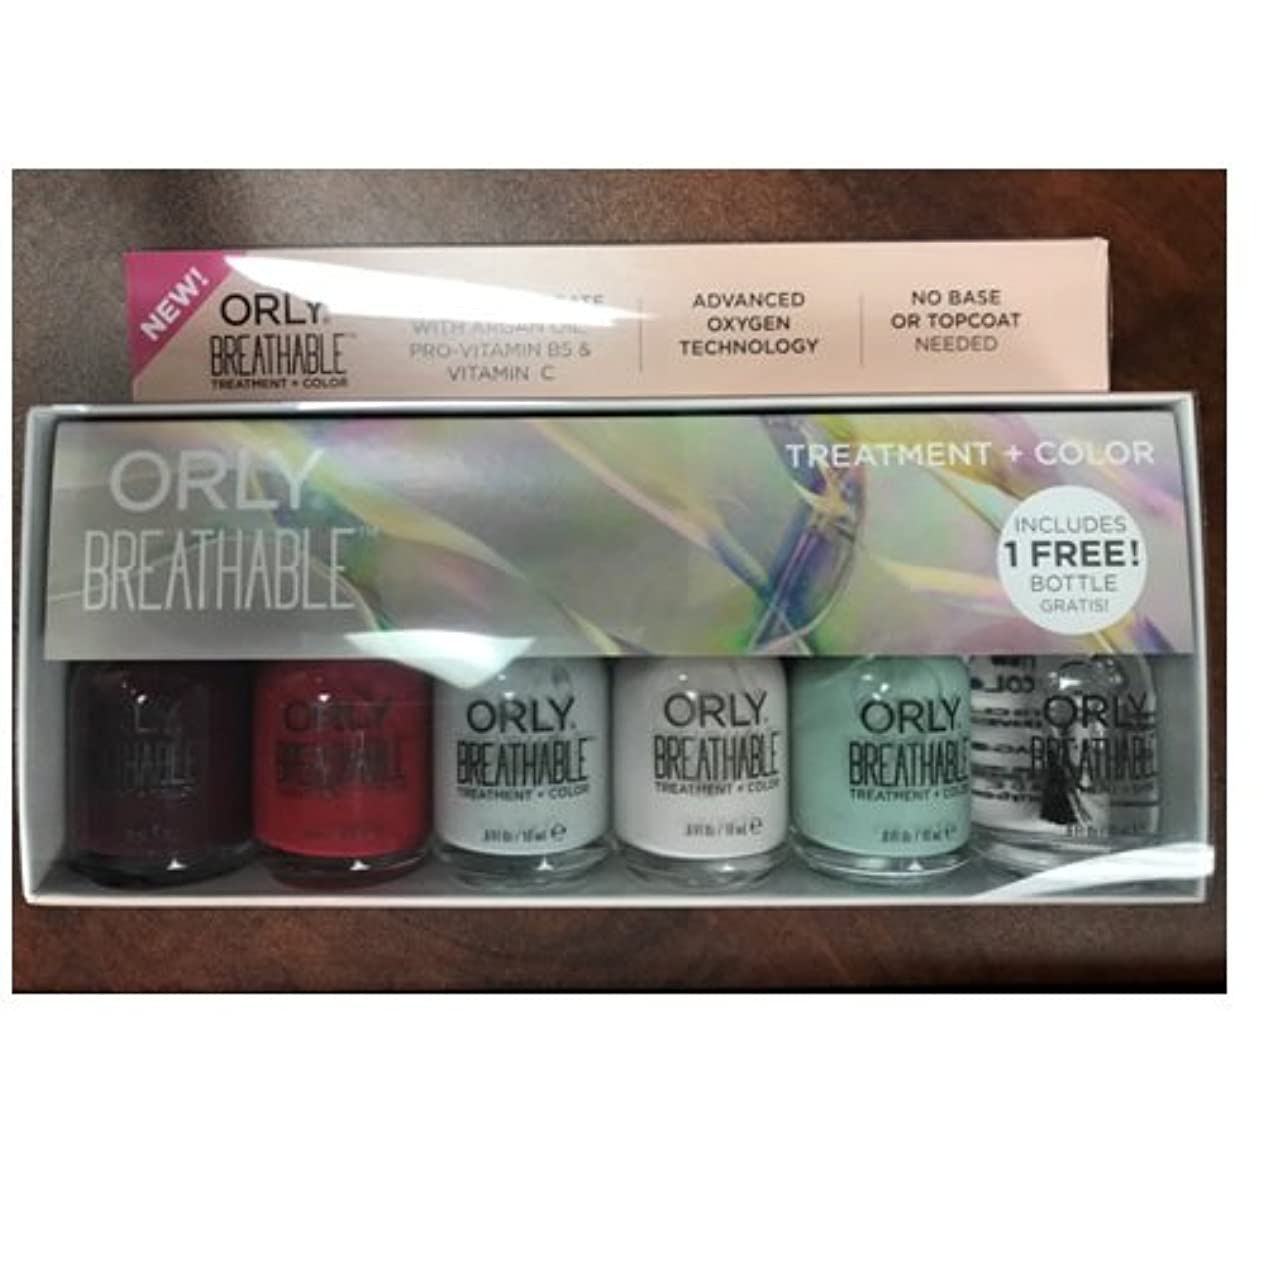 流用する回転するルビーOrly Breathable Nail Lacquer - Treatment + Color - 6 Piece Kit - 18ml / 0.6oz Each